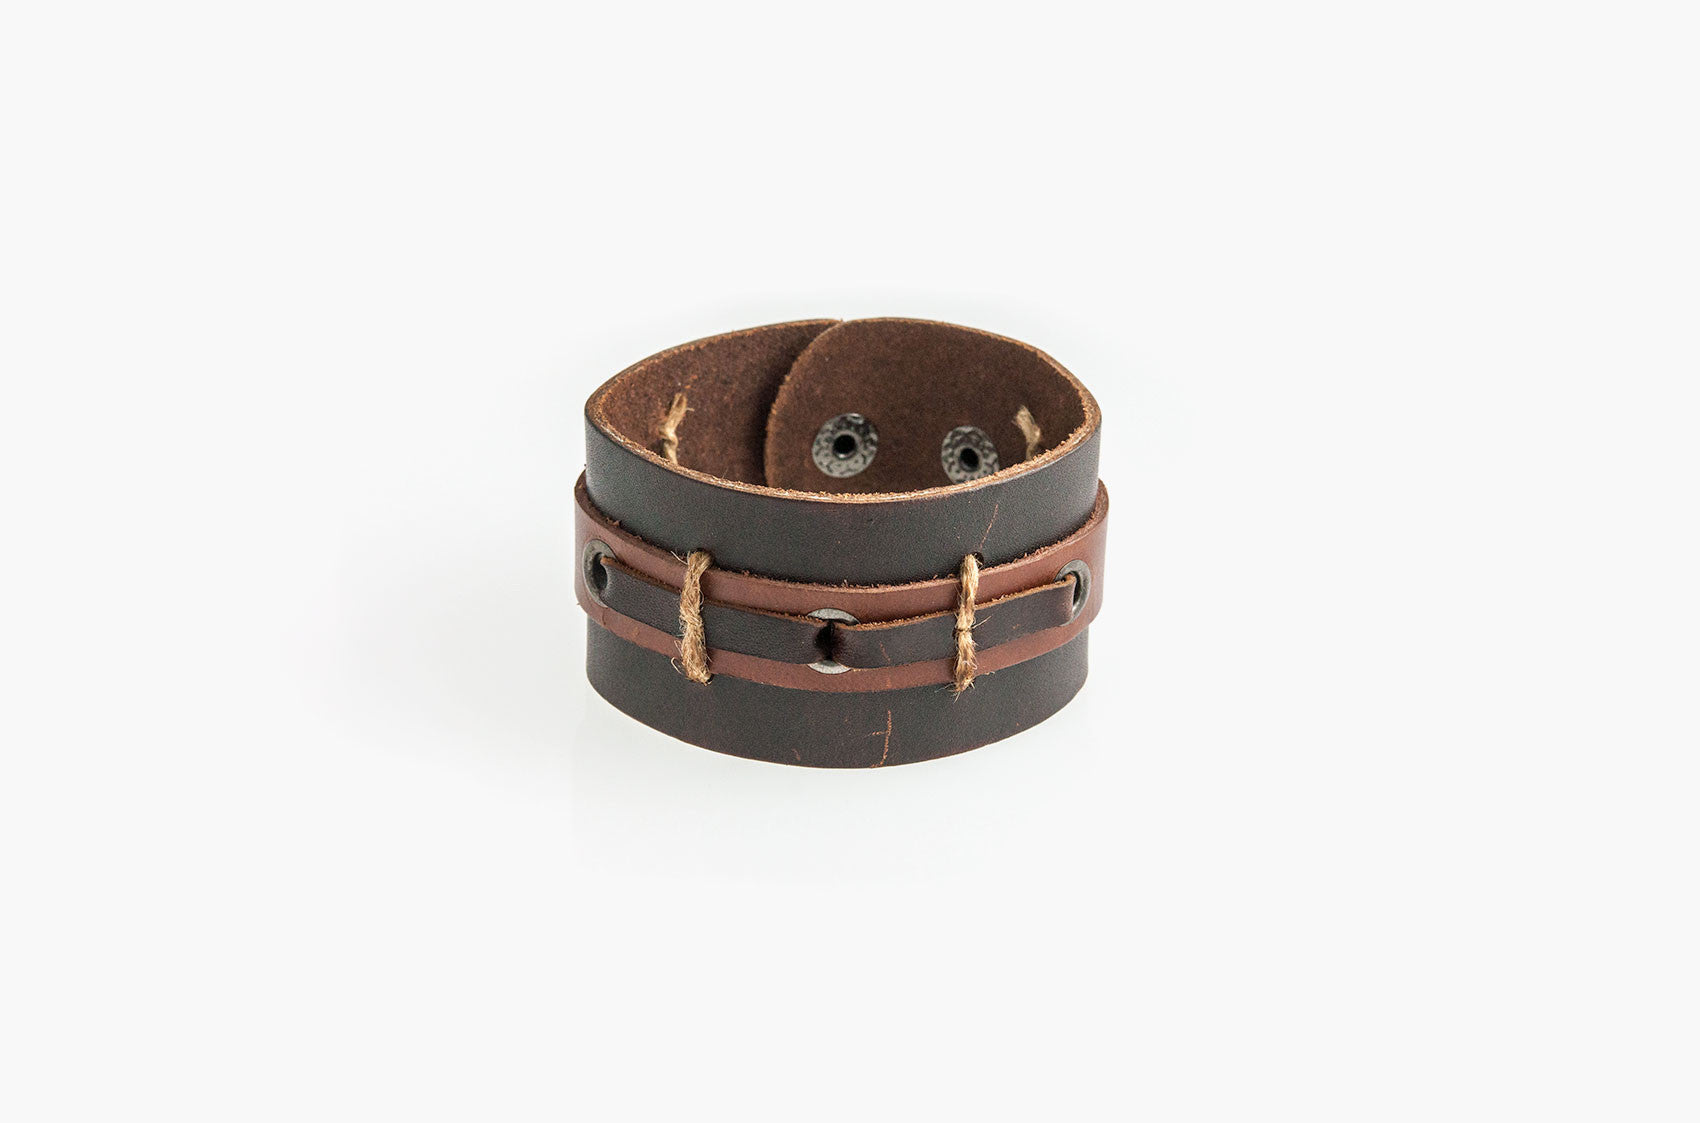 Leather and rope wide wristband bracelet